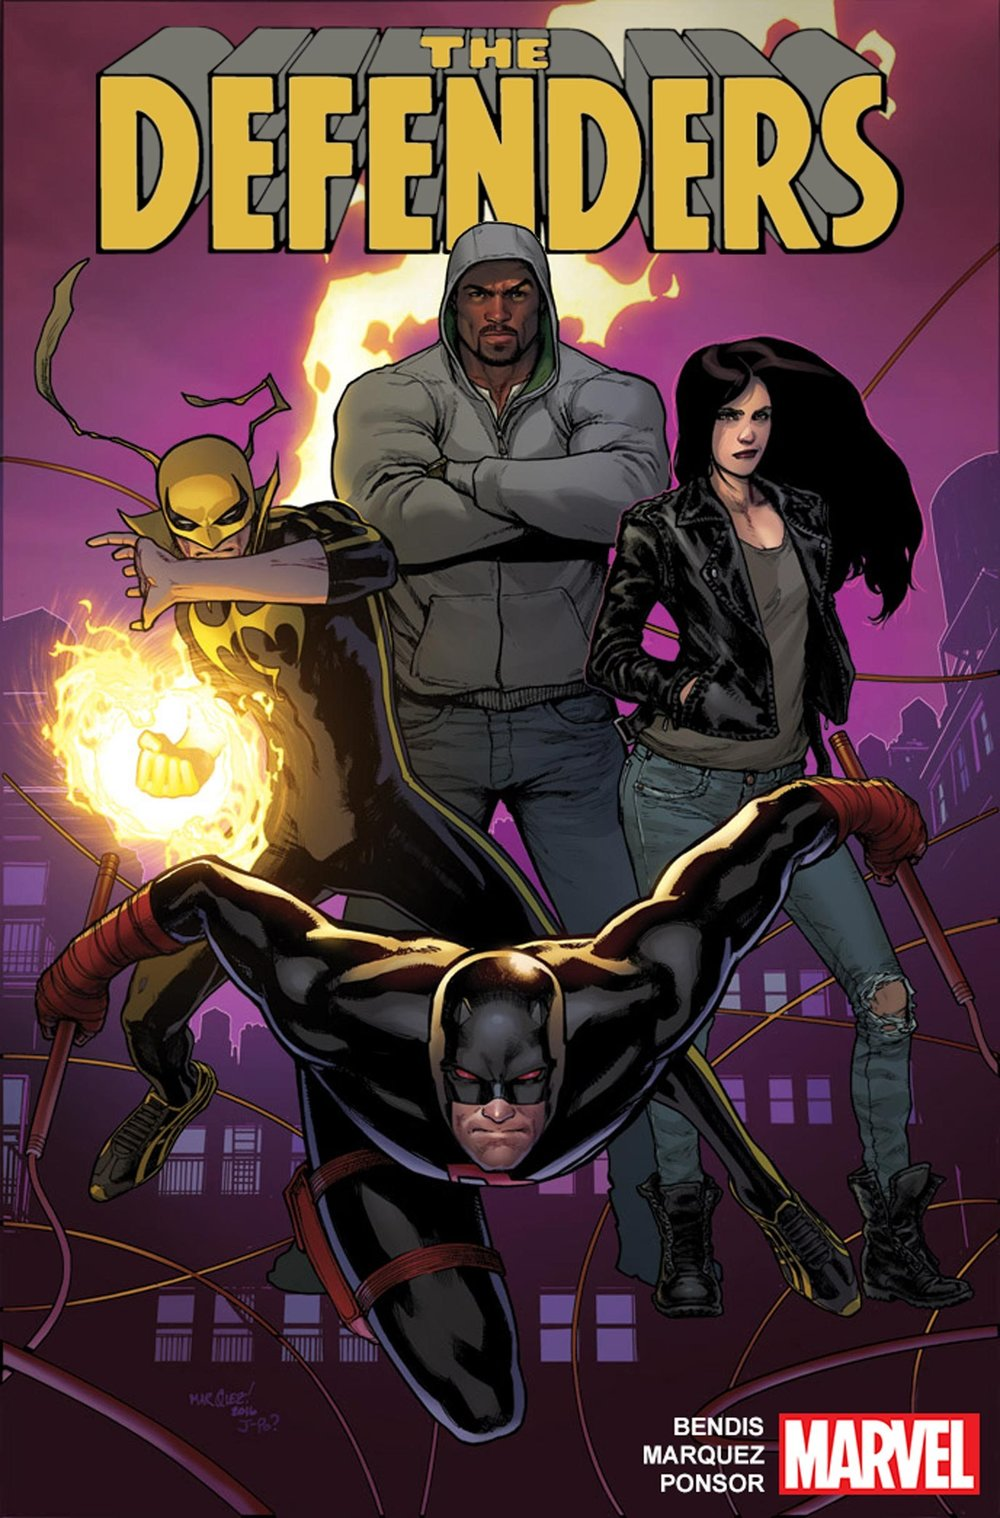 Marvel's New DEFENDERS Comic is Off the Hook!3